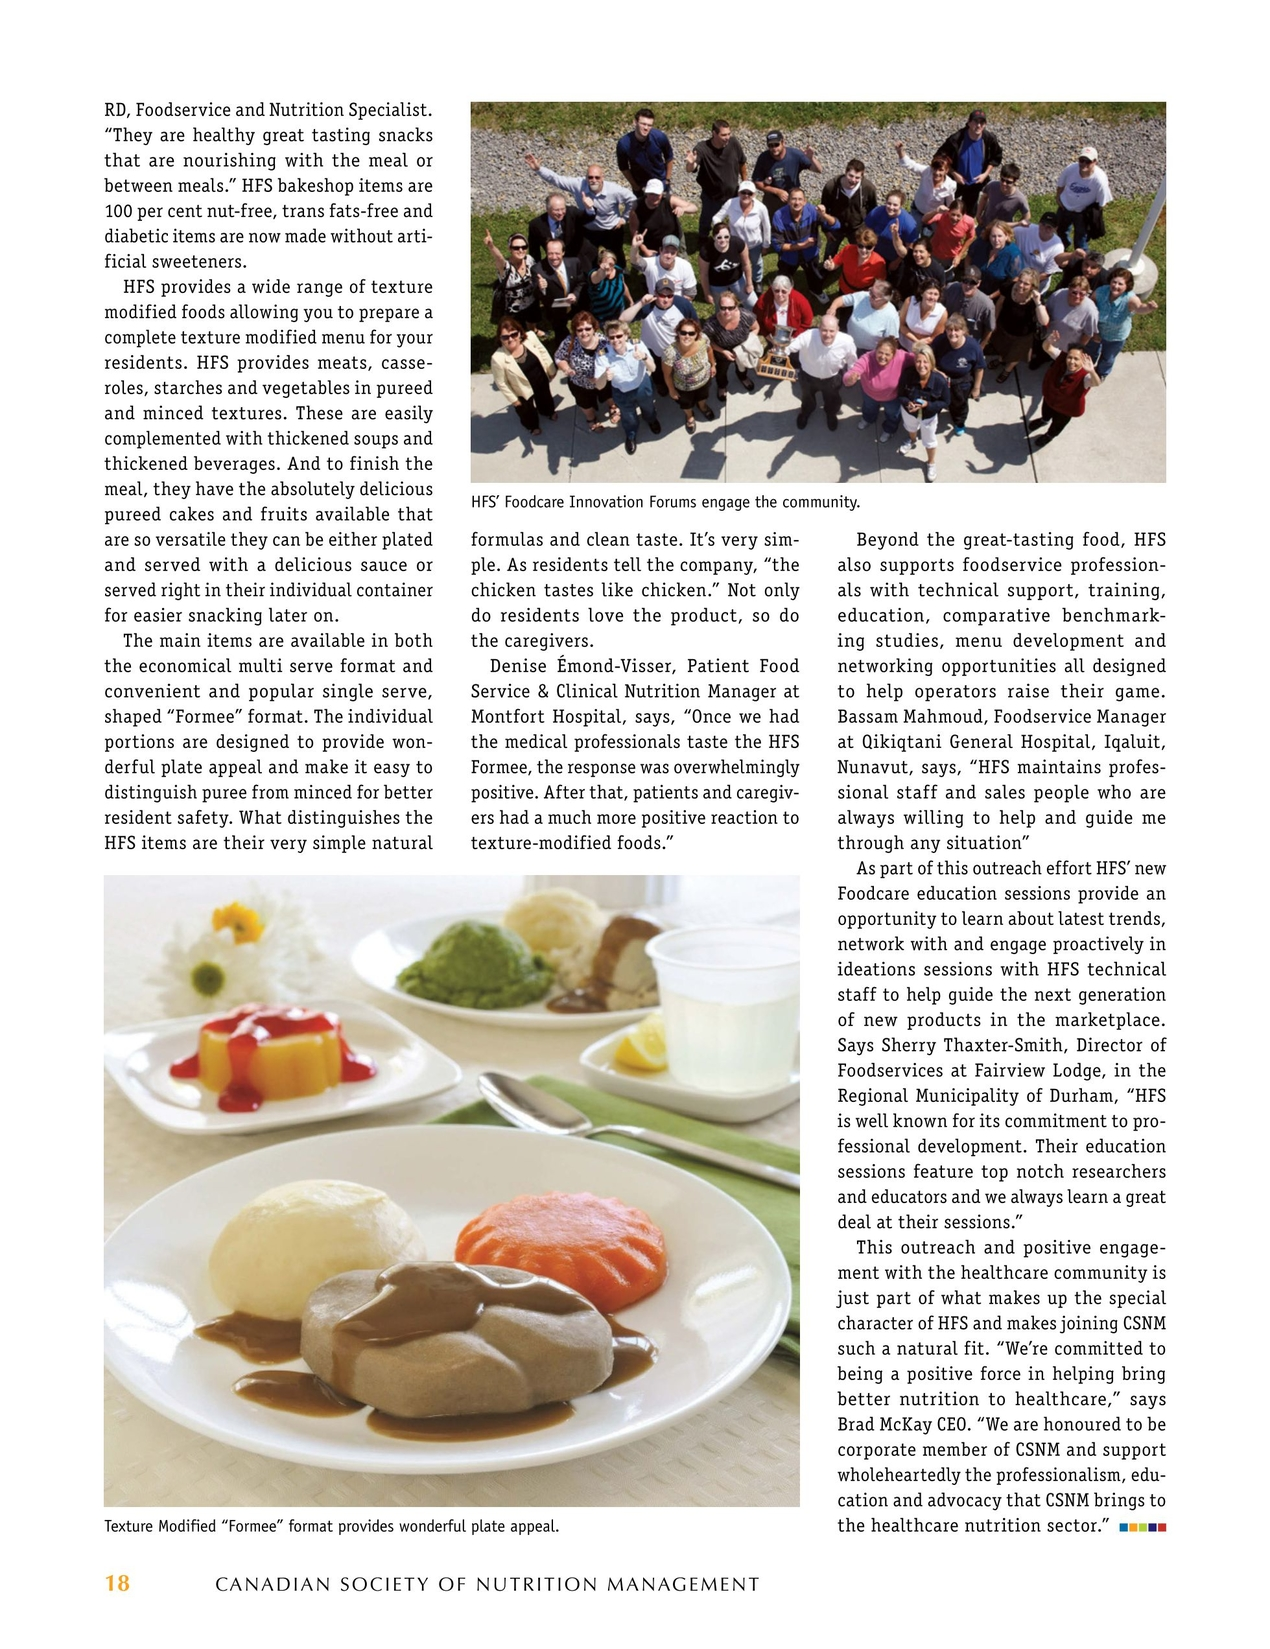 Food Service & Nutrition - Volume 1 No 2